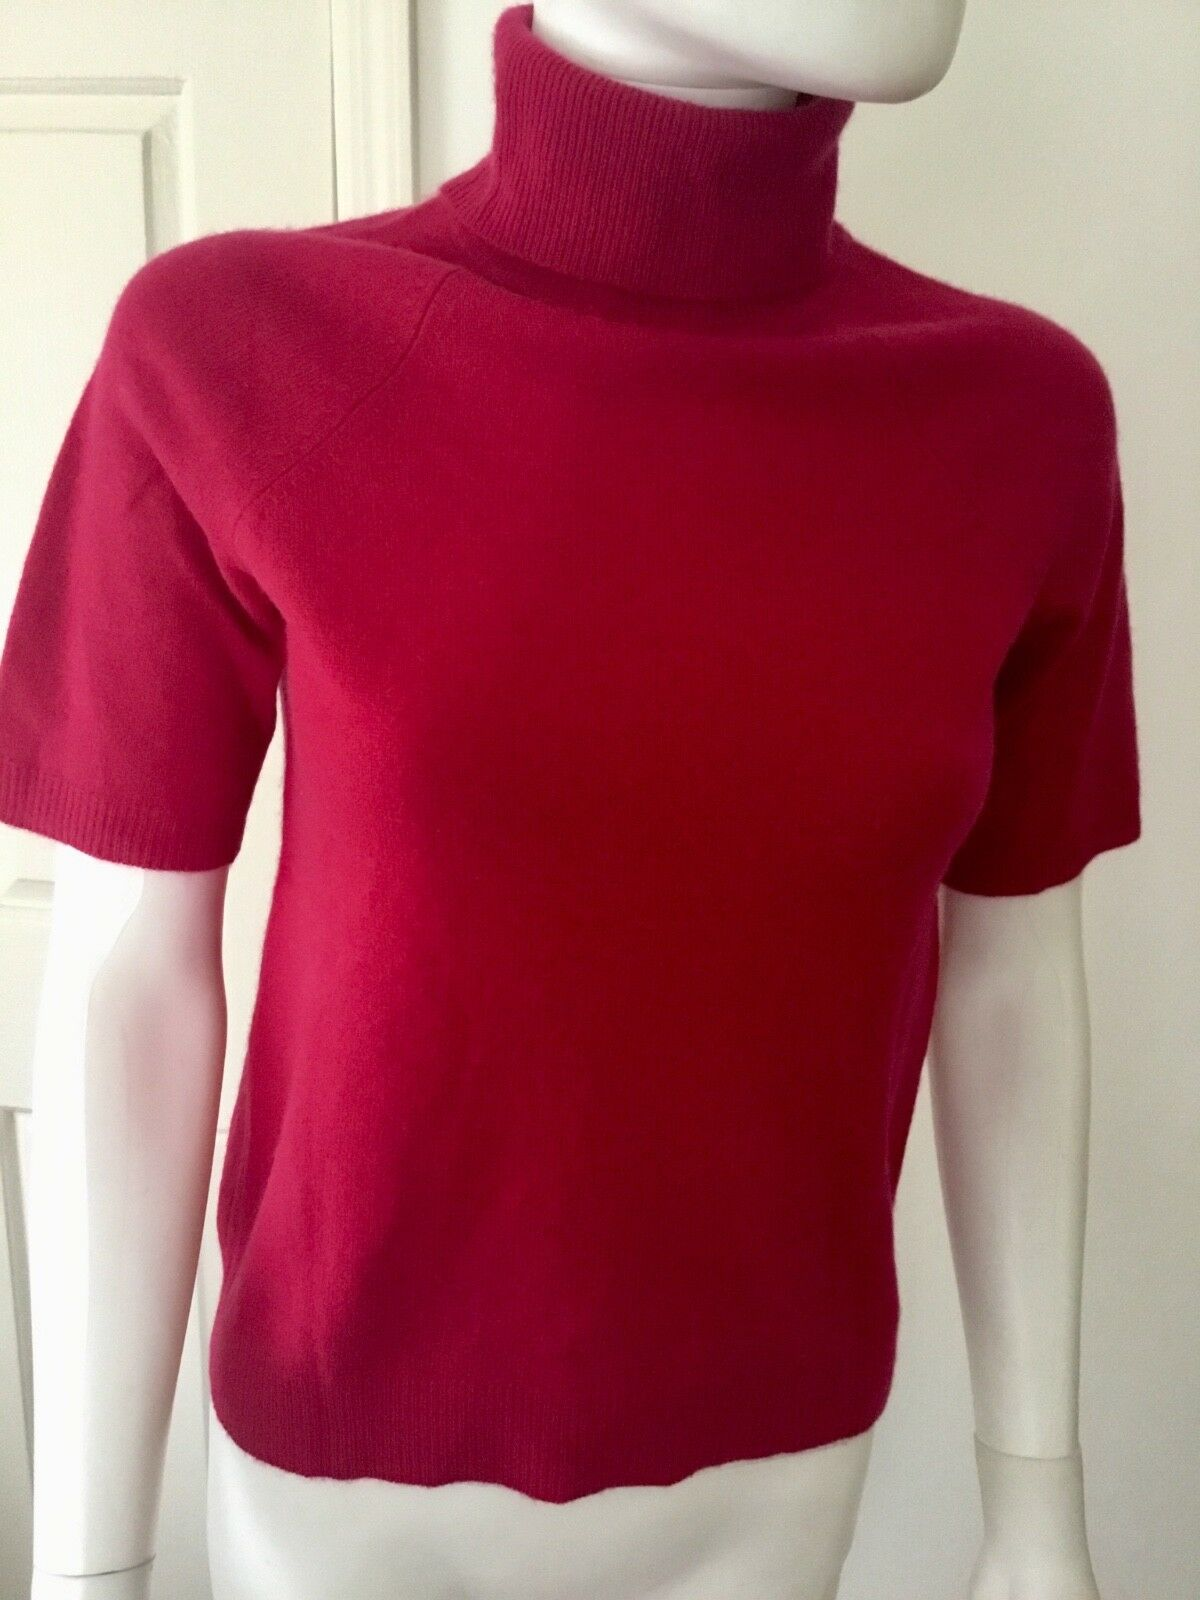 Lord & Taylor Red Short Sleeve Two Ply Cashmere Sweater Sz S